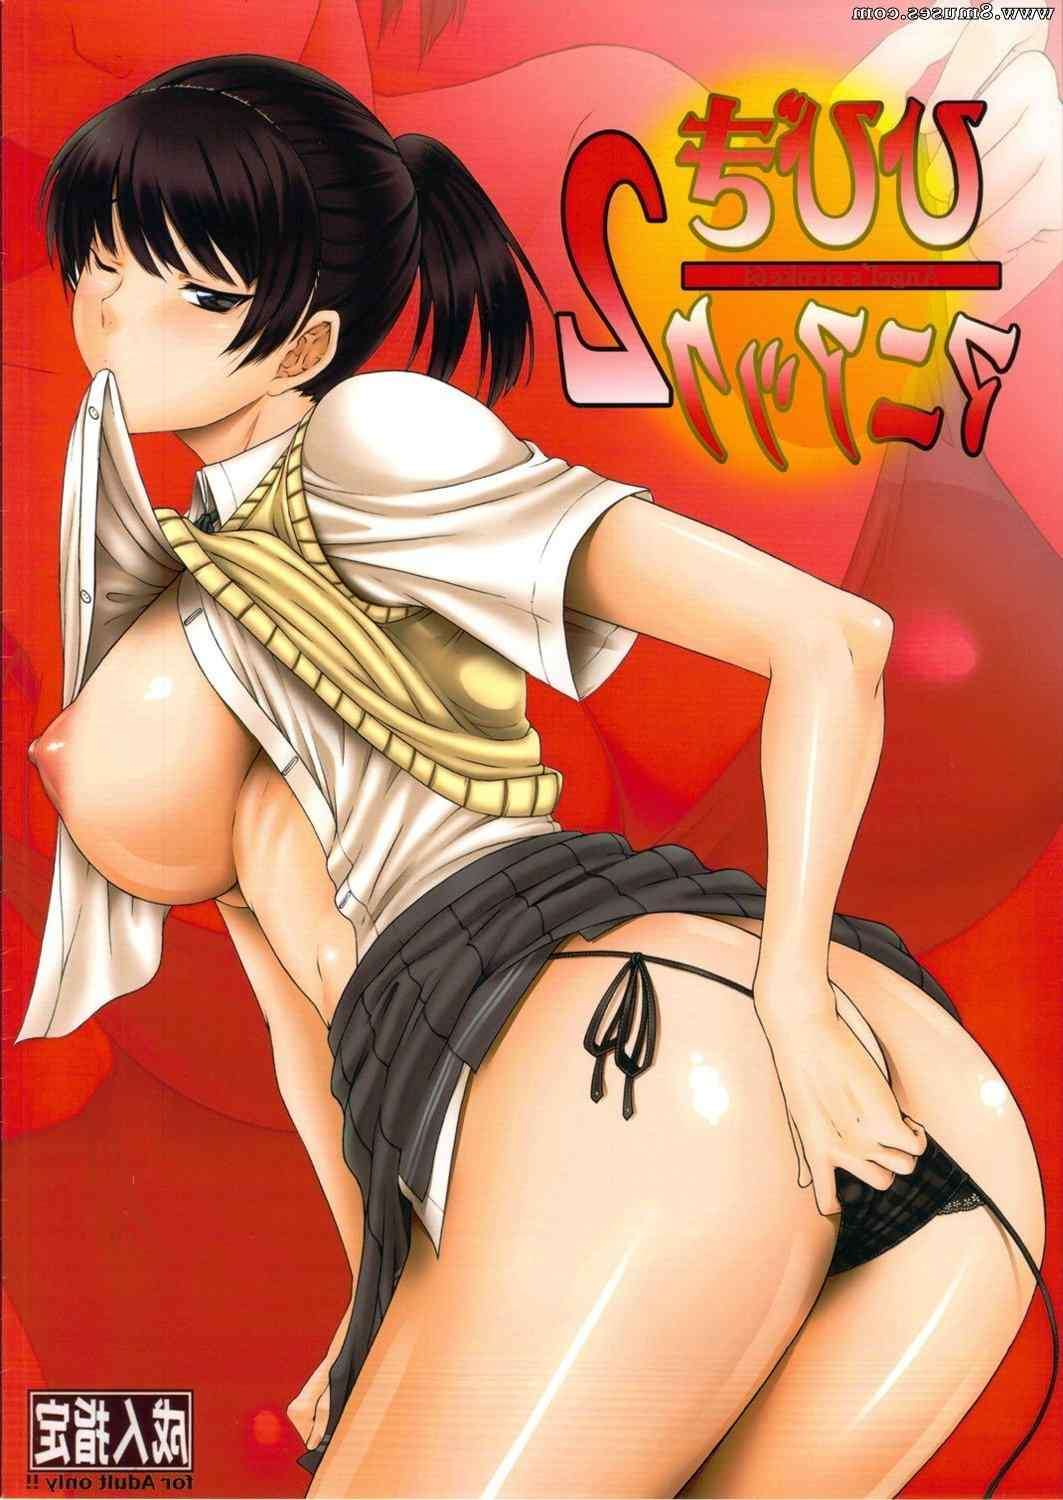 Hentai-and-Manga-English/Kutani/Manga Manga__8muses_-_Sex_and_Porn_Comics_8.jpg